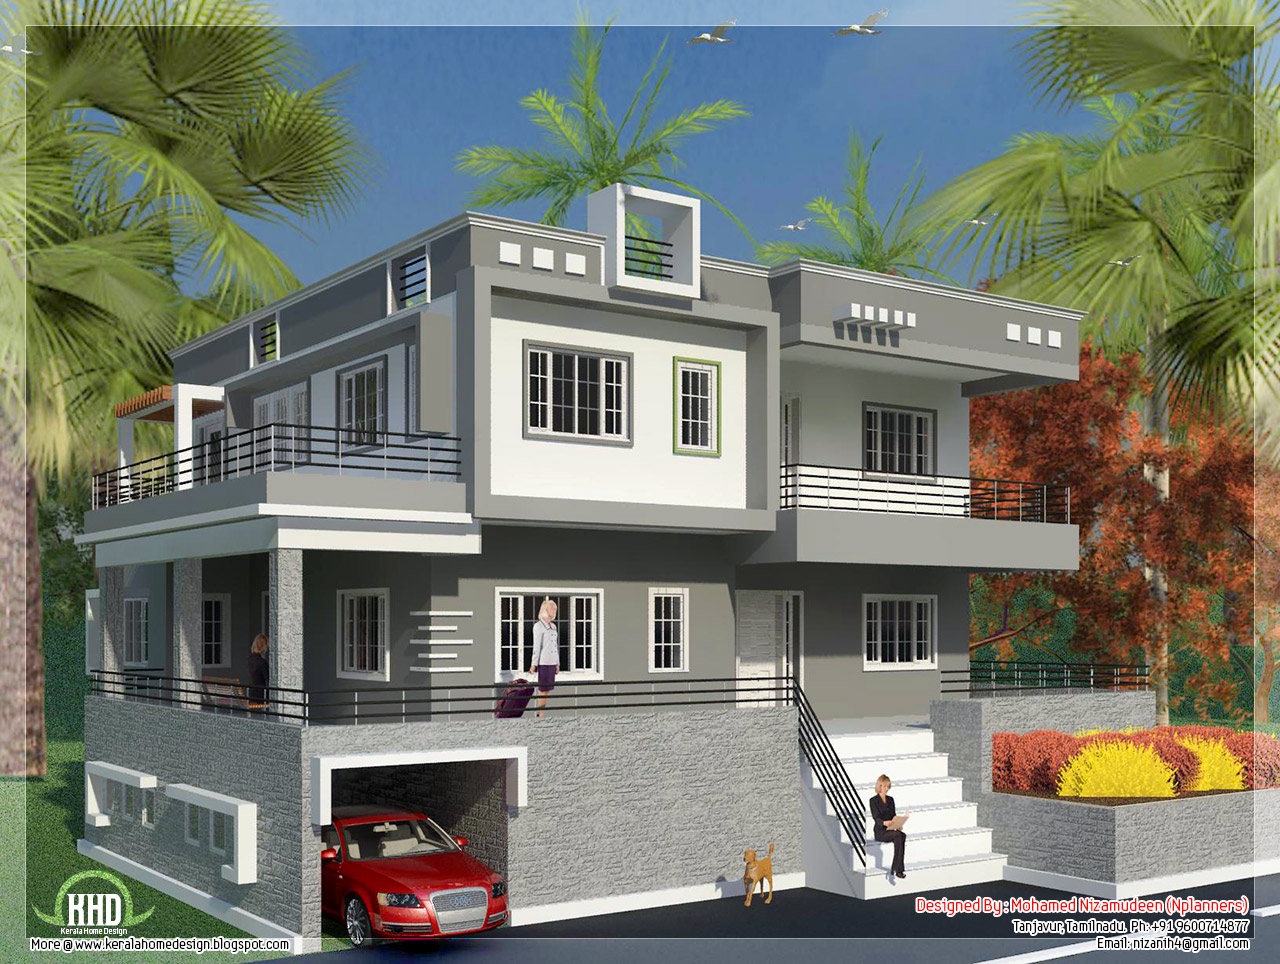 North indian style minimalist house exterior design Pictures of exterior home designs in india